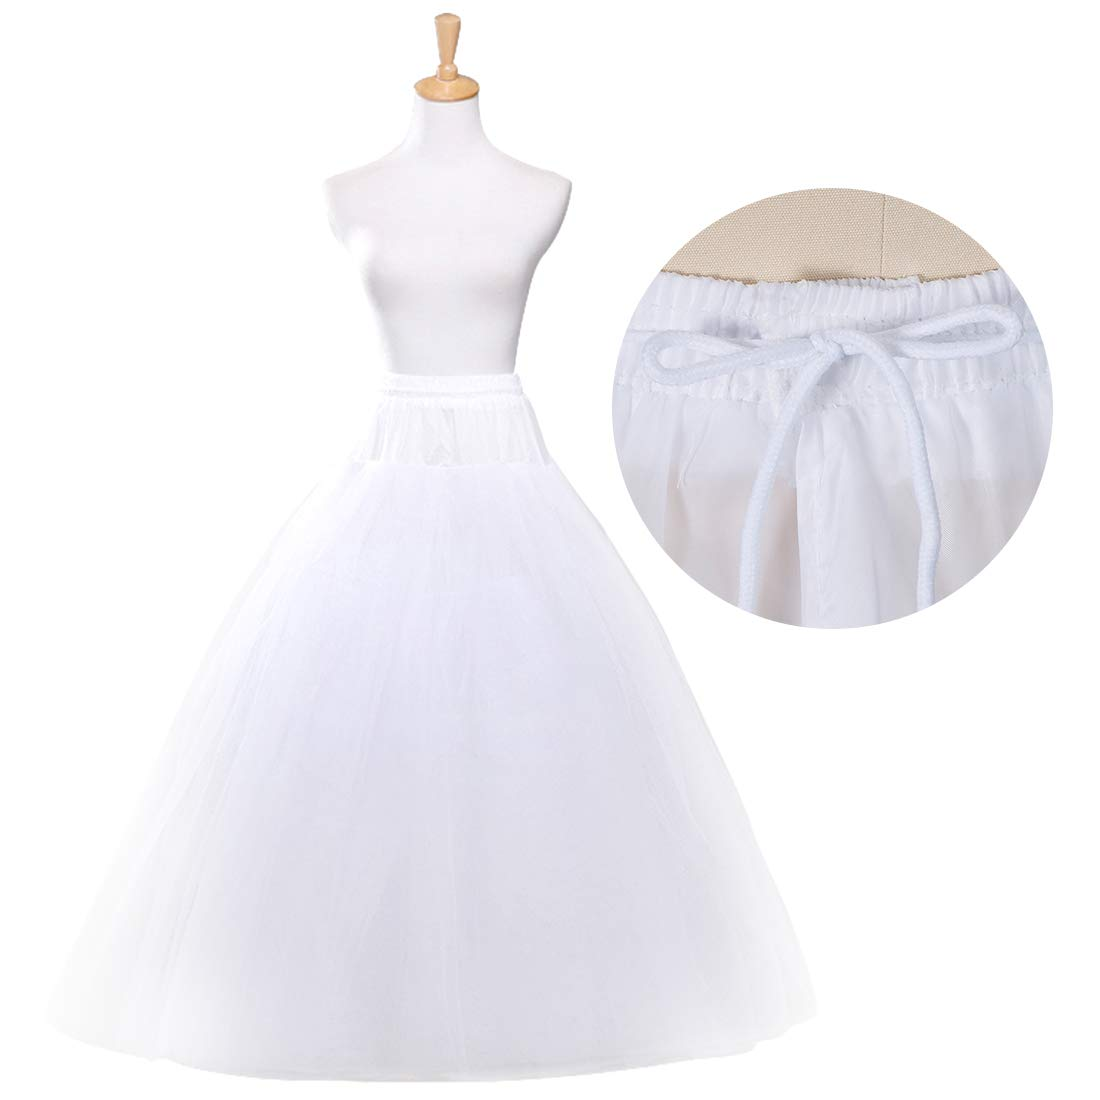 Victorian Lingerie – Underwear, Petticoat, Bloomers, Chemise Make you perfect Hoop Skirt Petticoat Skirt for Women Ball Gown Slip Crinoline Underskirt 5 Ruffles 4 Hoop¡­ $21.99 AT vintagedancer.com